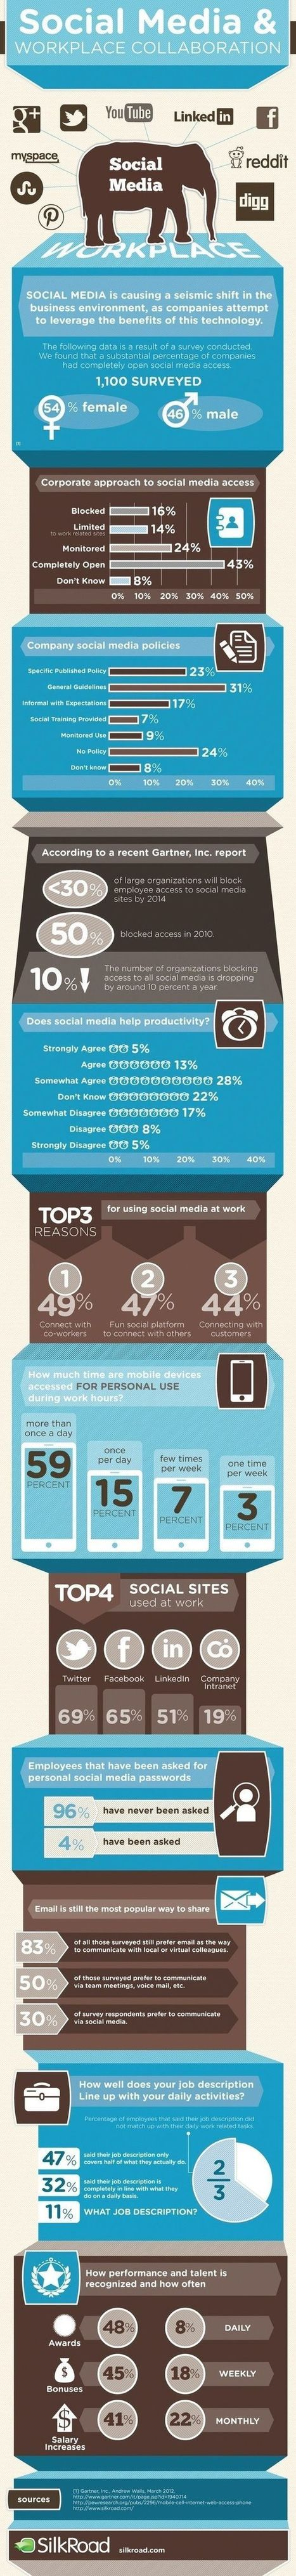 Social Media's Real ROI? Workplace Collaboration | Collaborative Revolution | Scoop.it